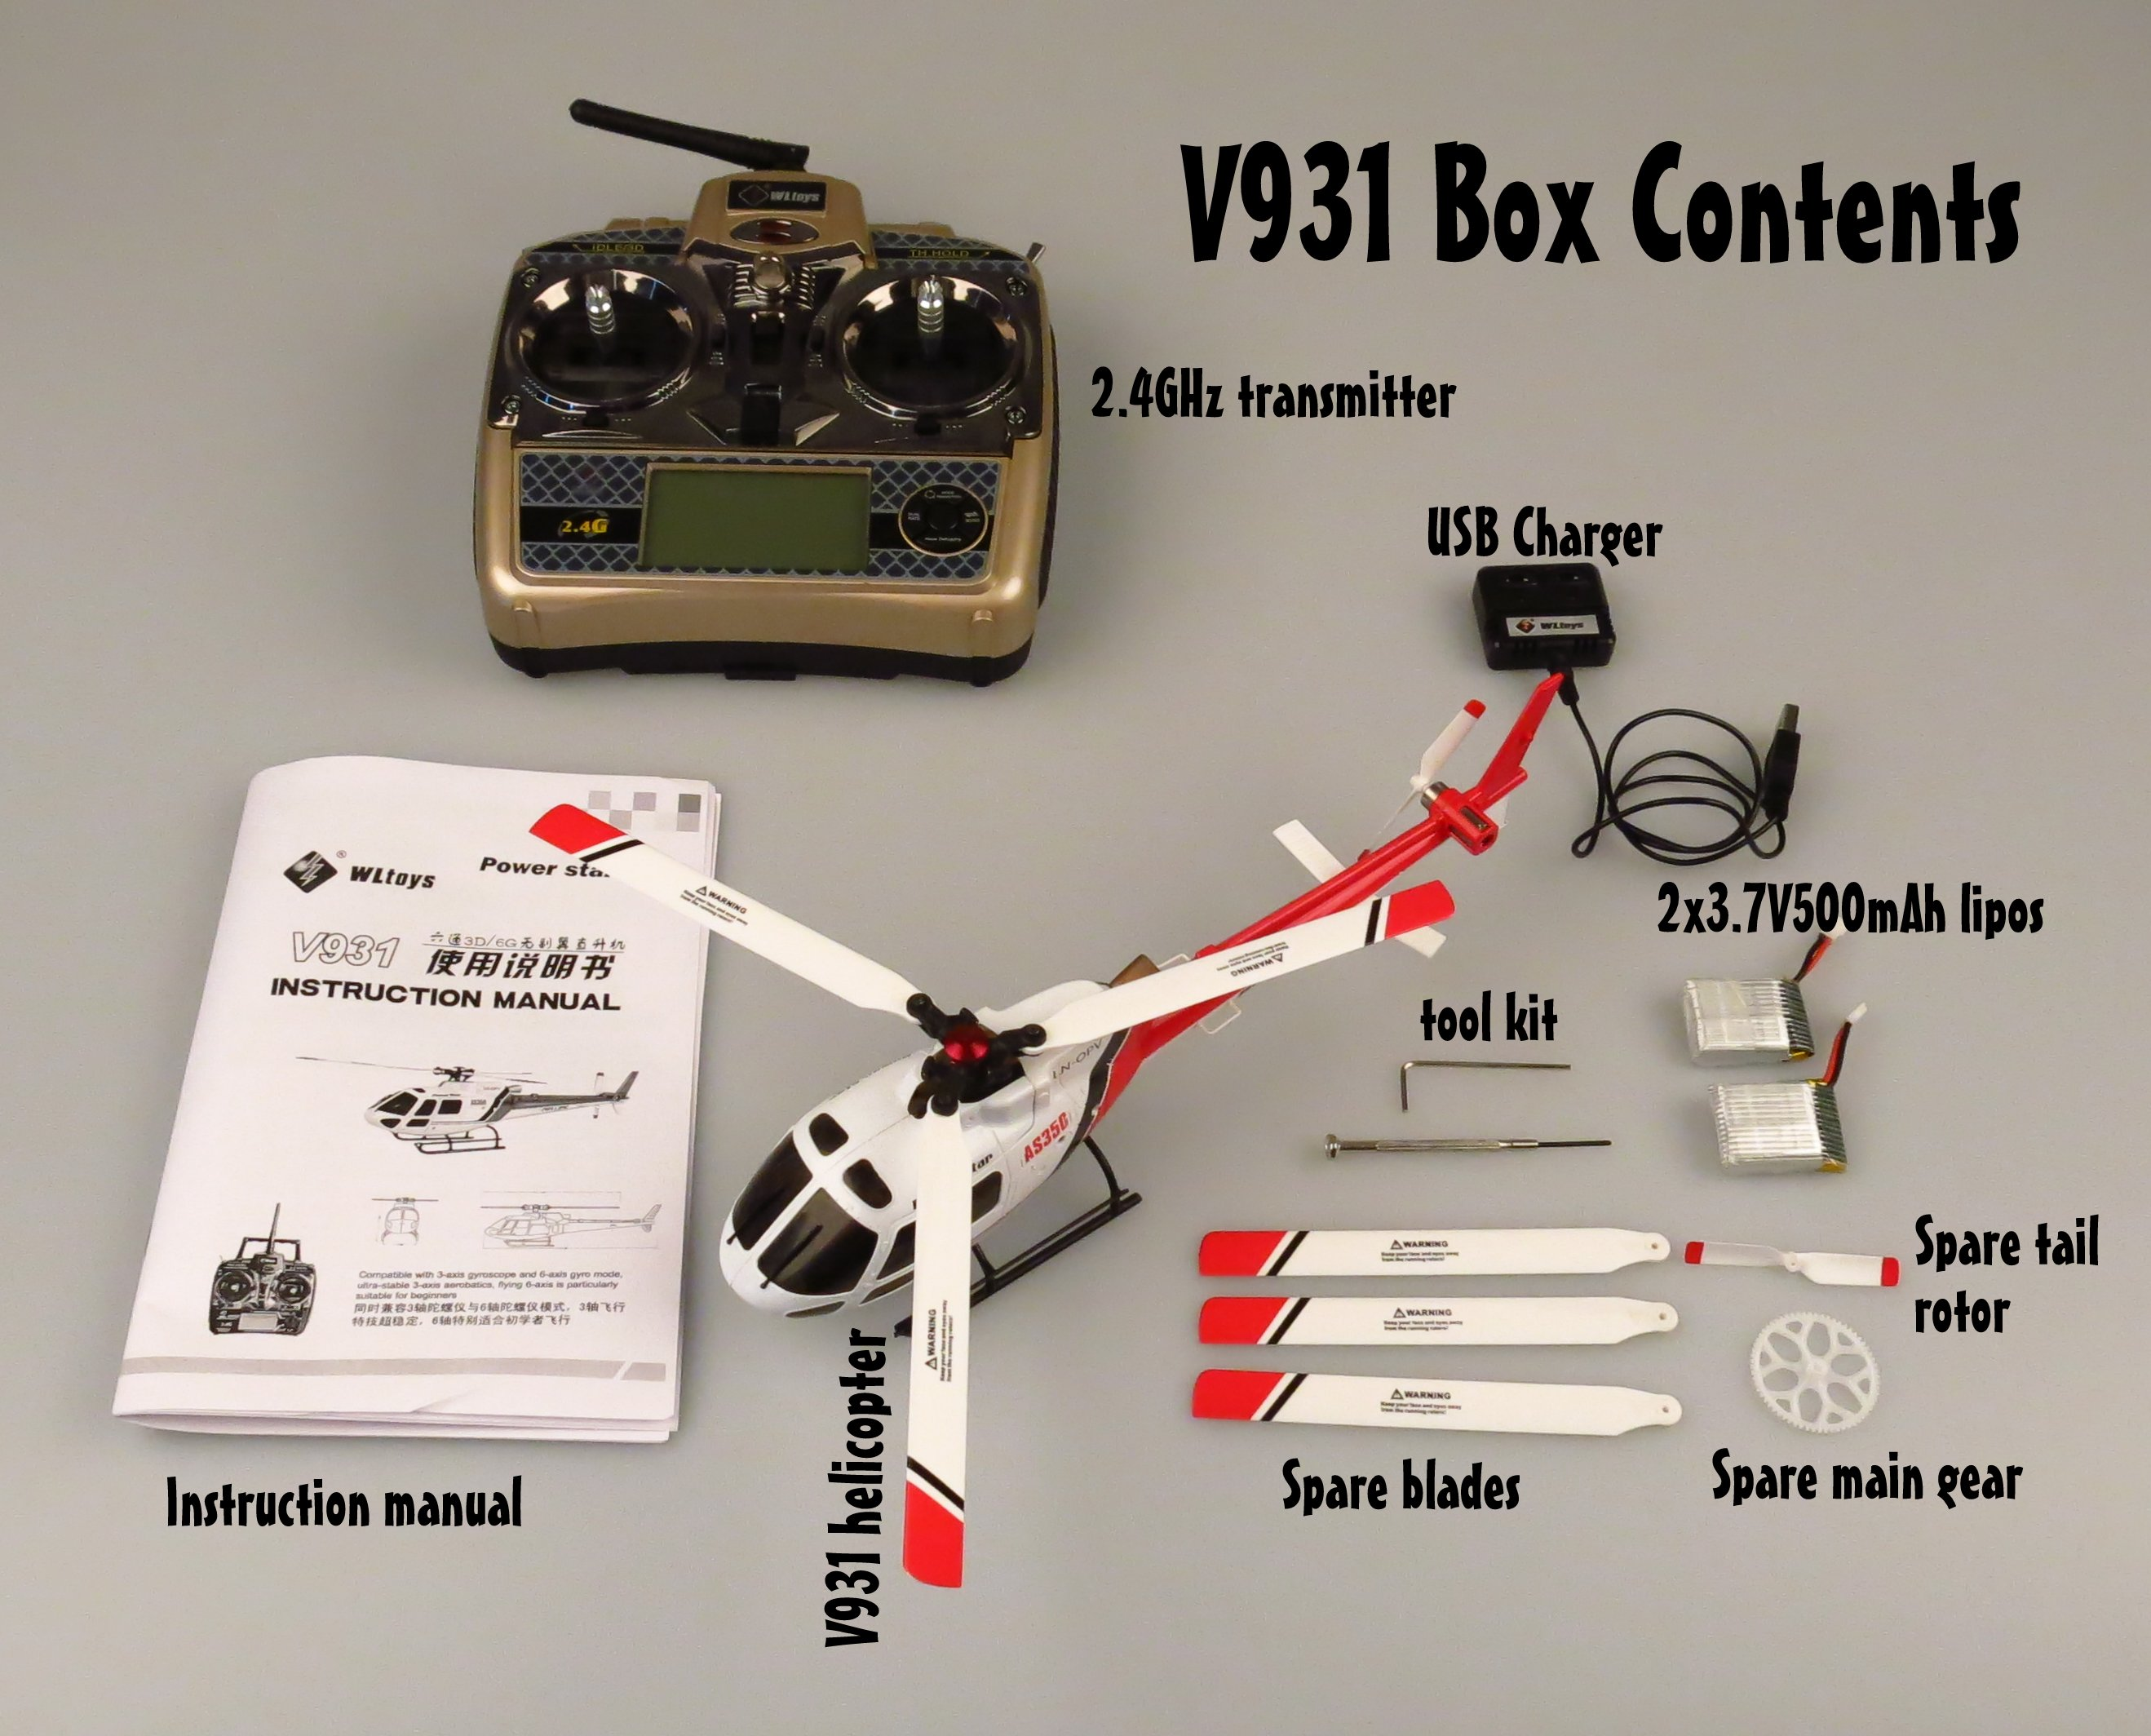 rc heli 6 channel with Showthread on 200772124914 besides Airfun Af902 Micro 35 Channel Helicopter further La Shades Lh Model Rc Helicopter 3 5 Channel Built Gyroscope Rs 840 7356 also 2exrc4duroch furthermore Showthread.